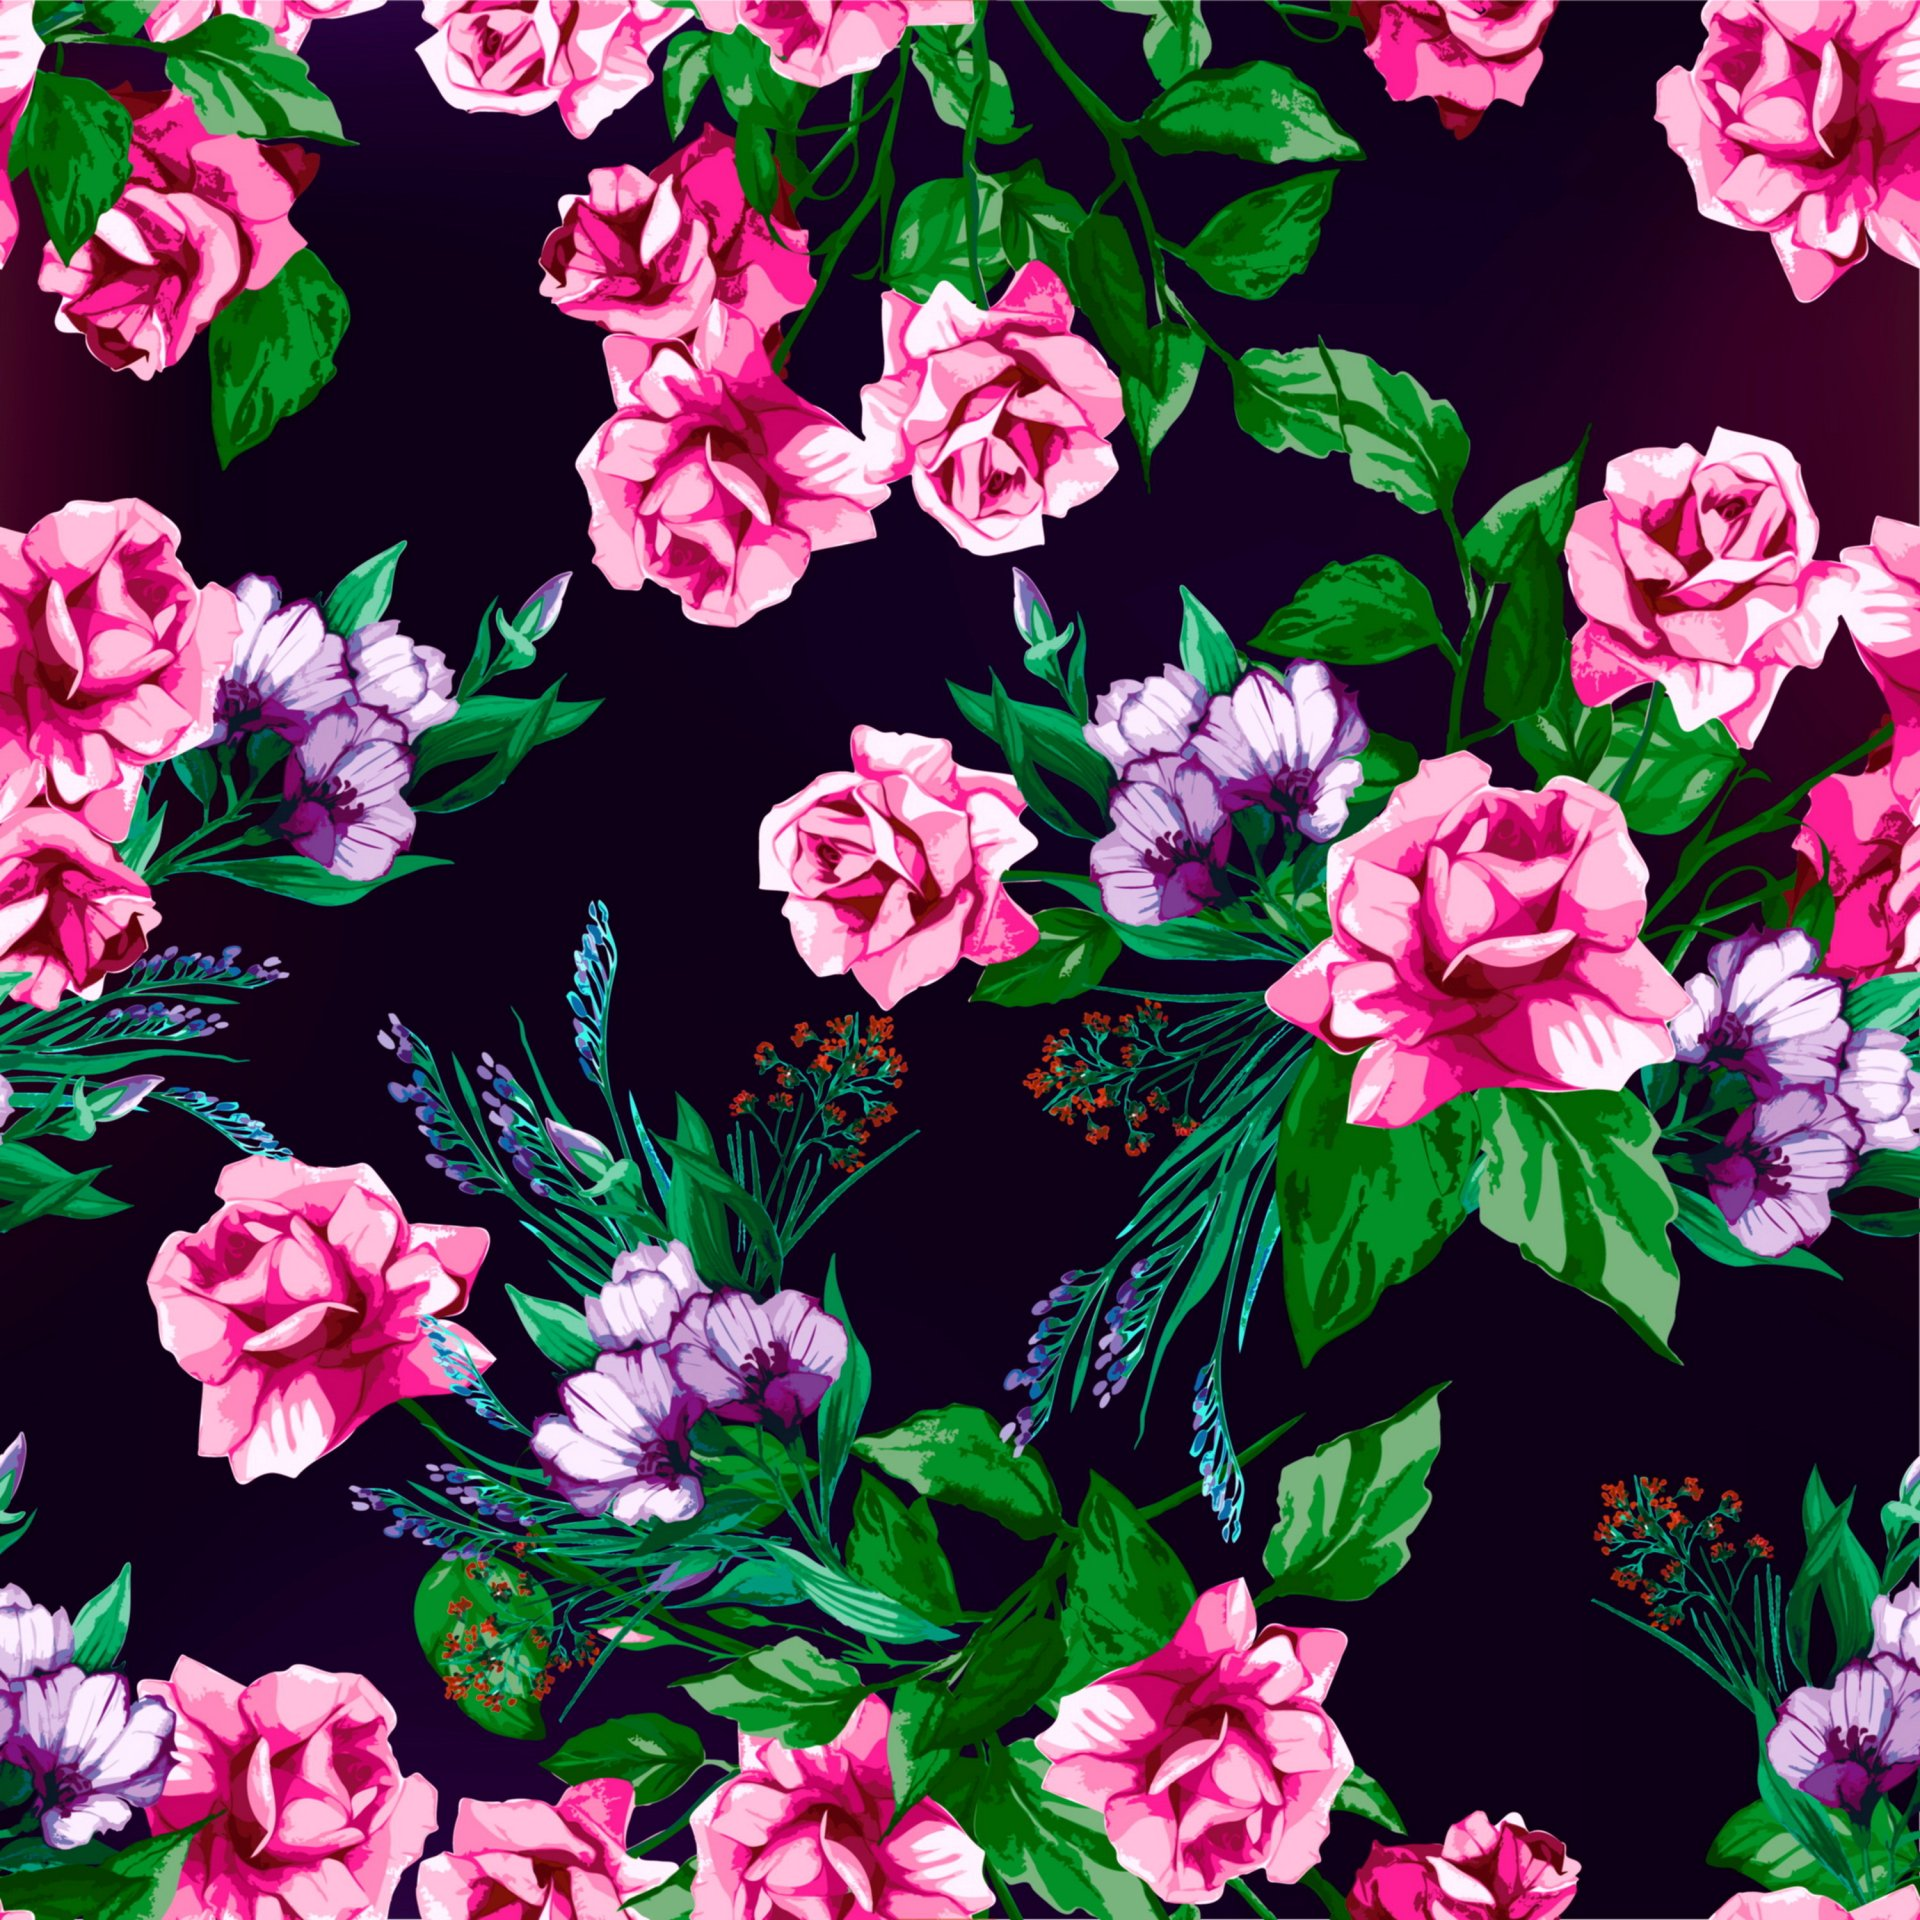 rose floral pattern roses prints textures background flower